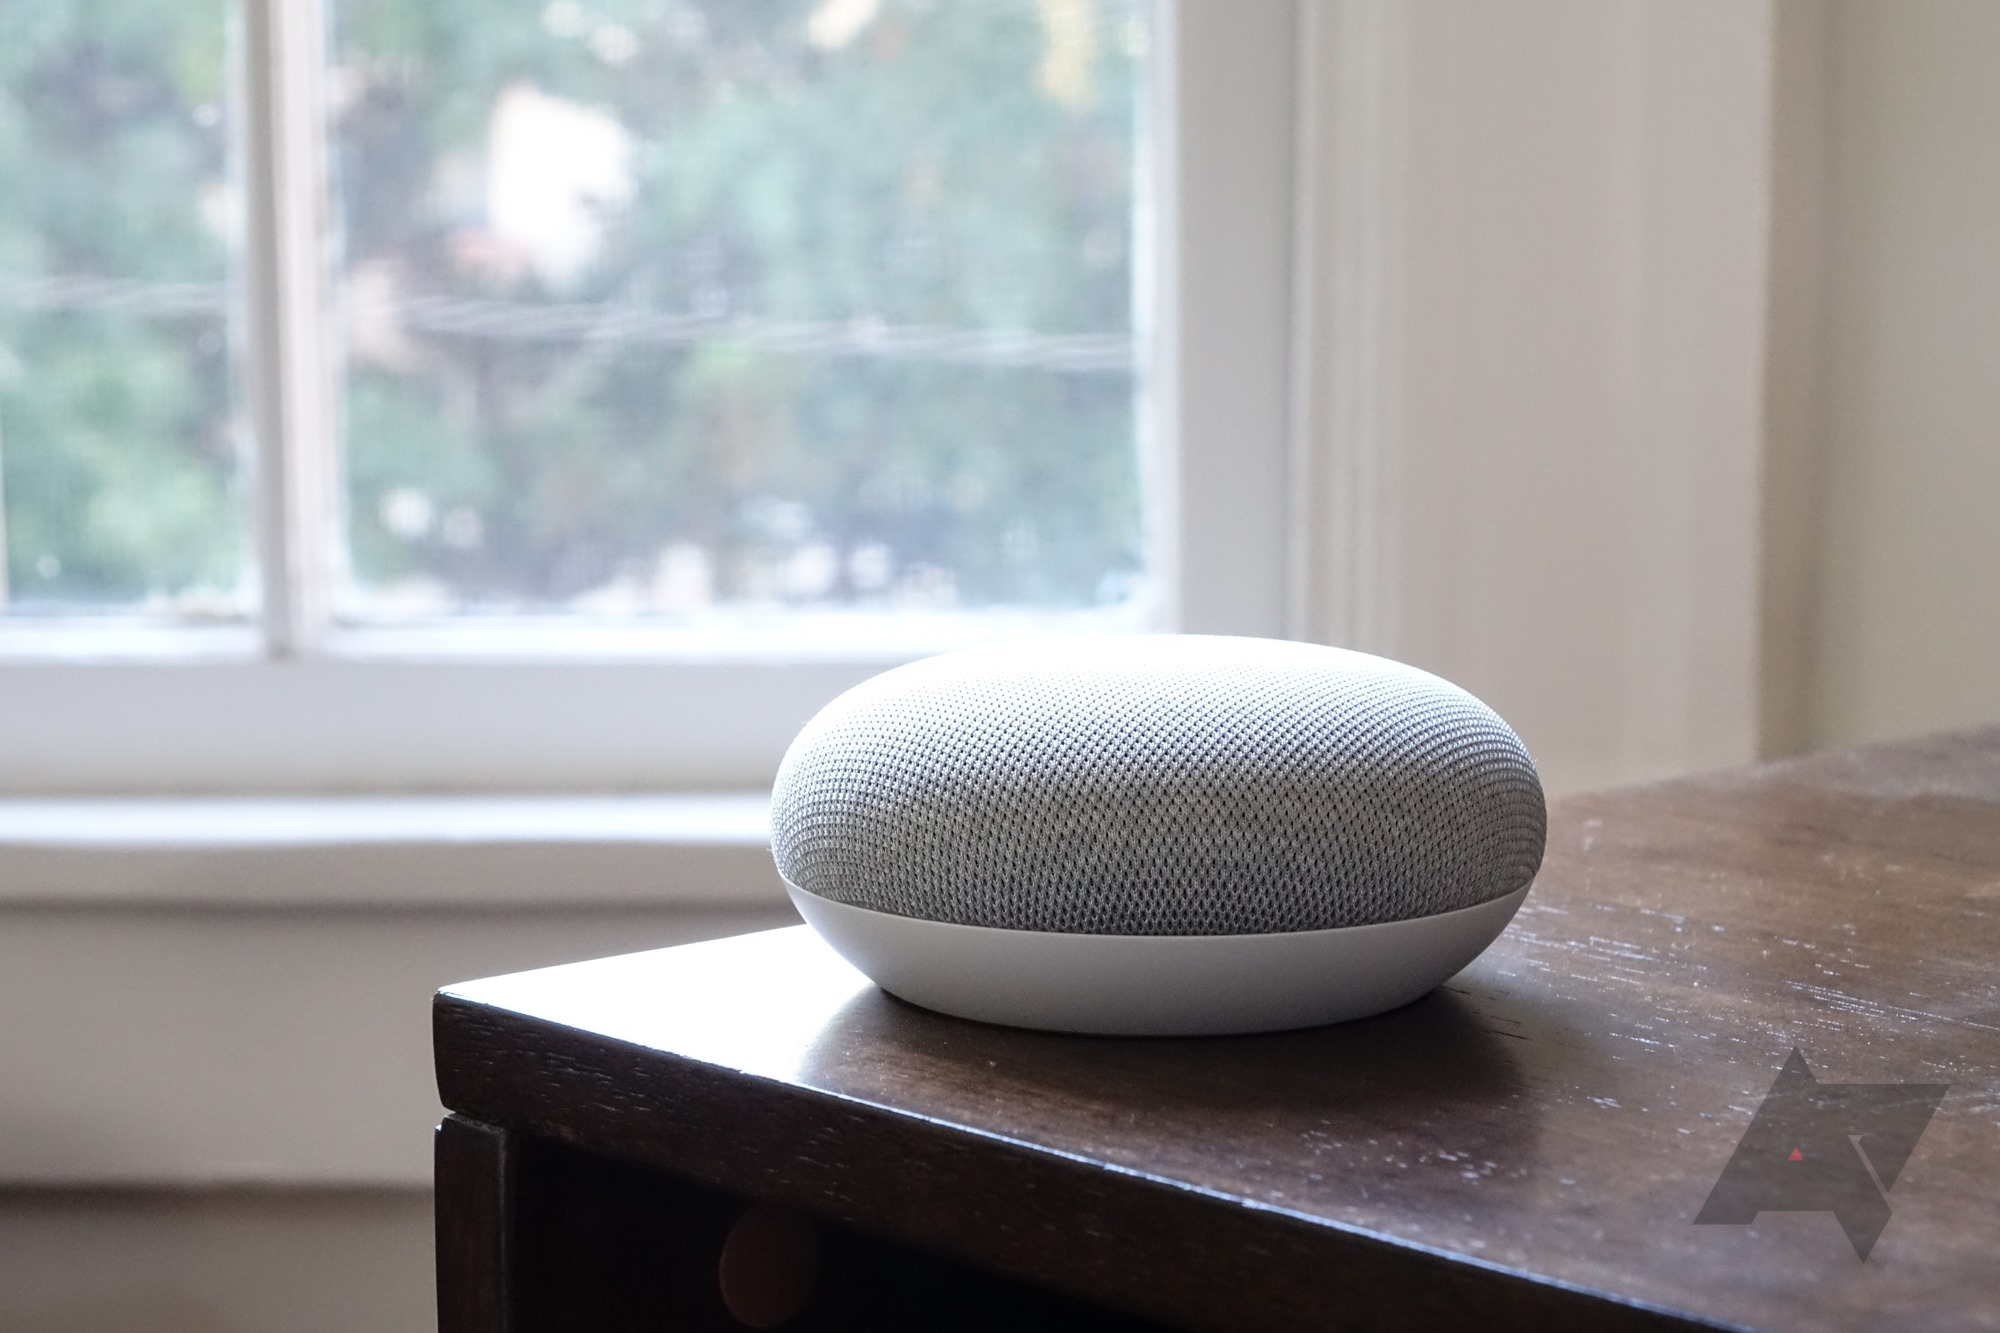 The Google Home Mini Is A Product So Obvious That Its Announcement Likely  Ushered In More Sighs Of Relief Than Genuine Excitement.